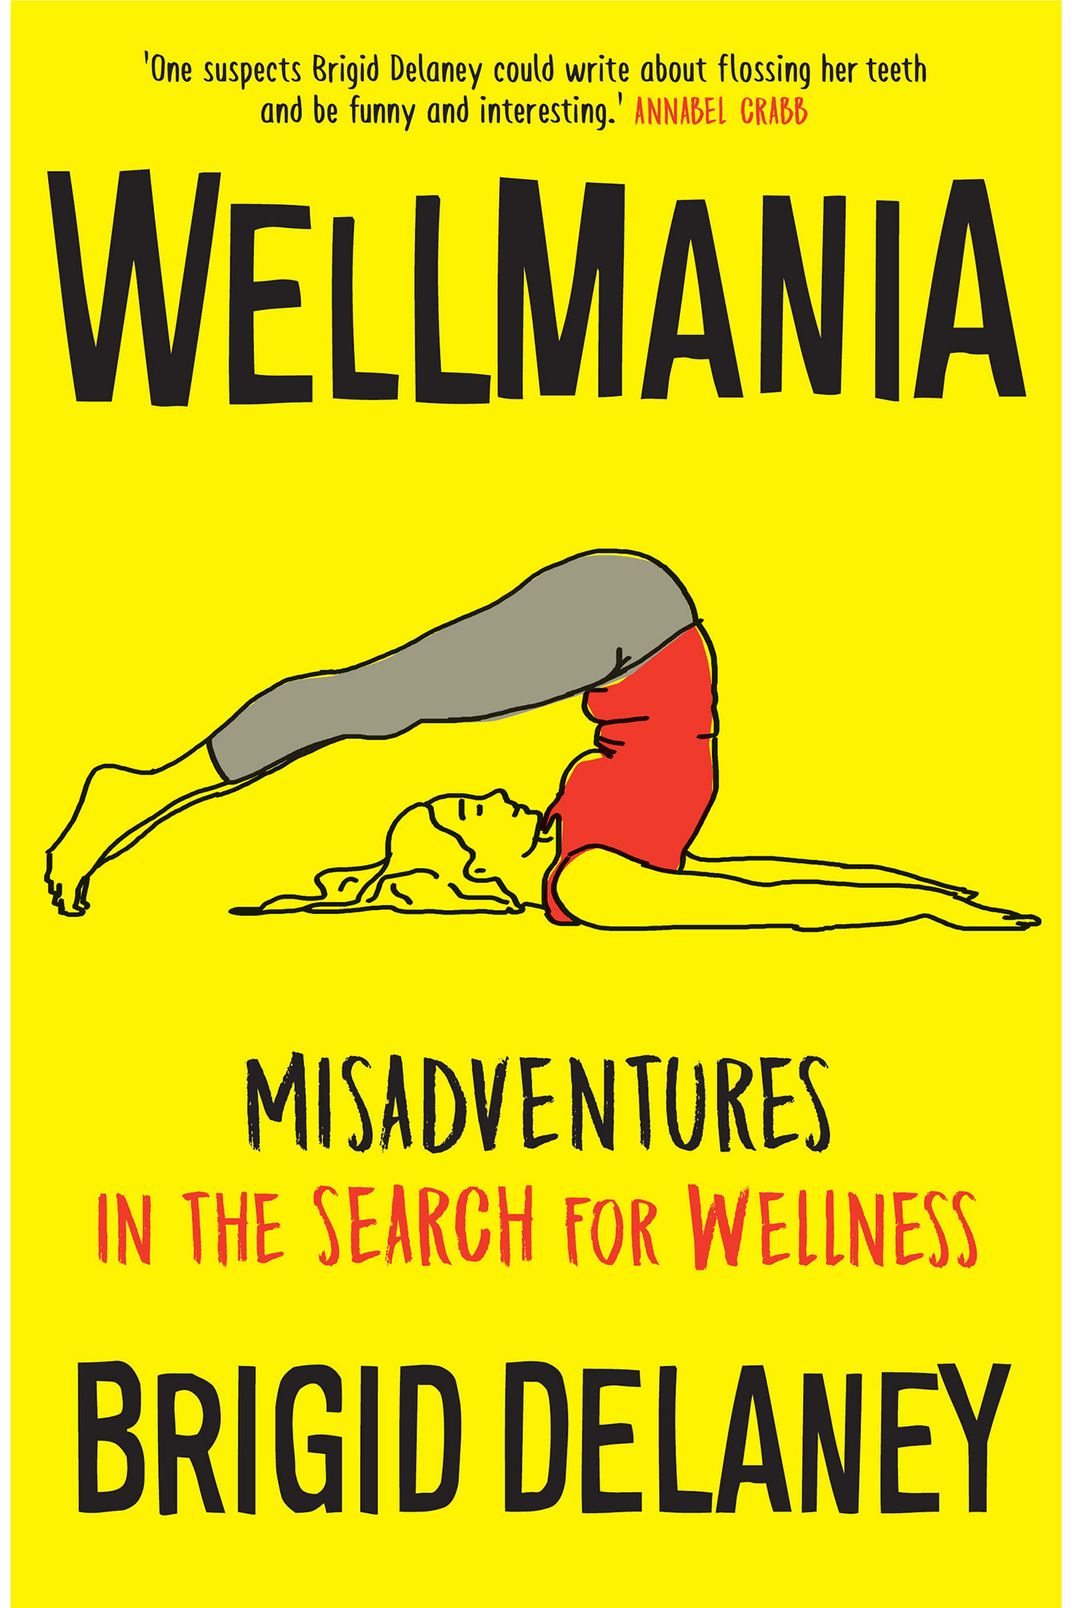 Wellmania, by Brigid Delaney